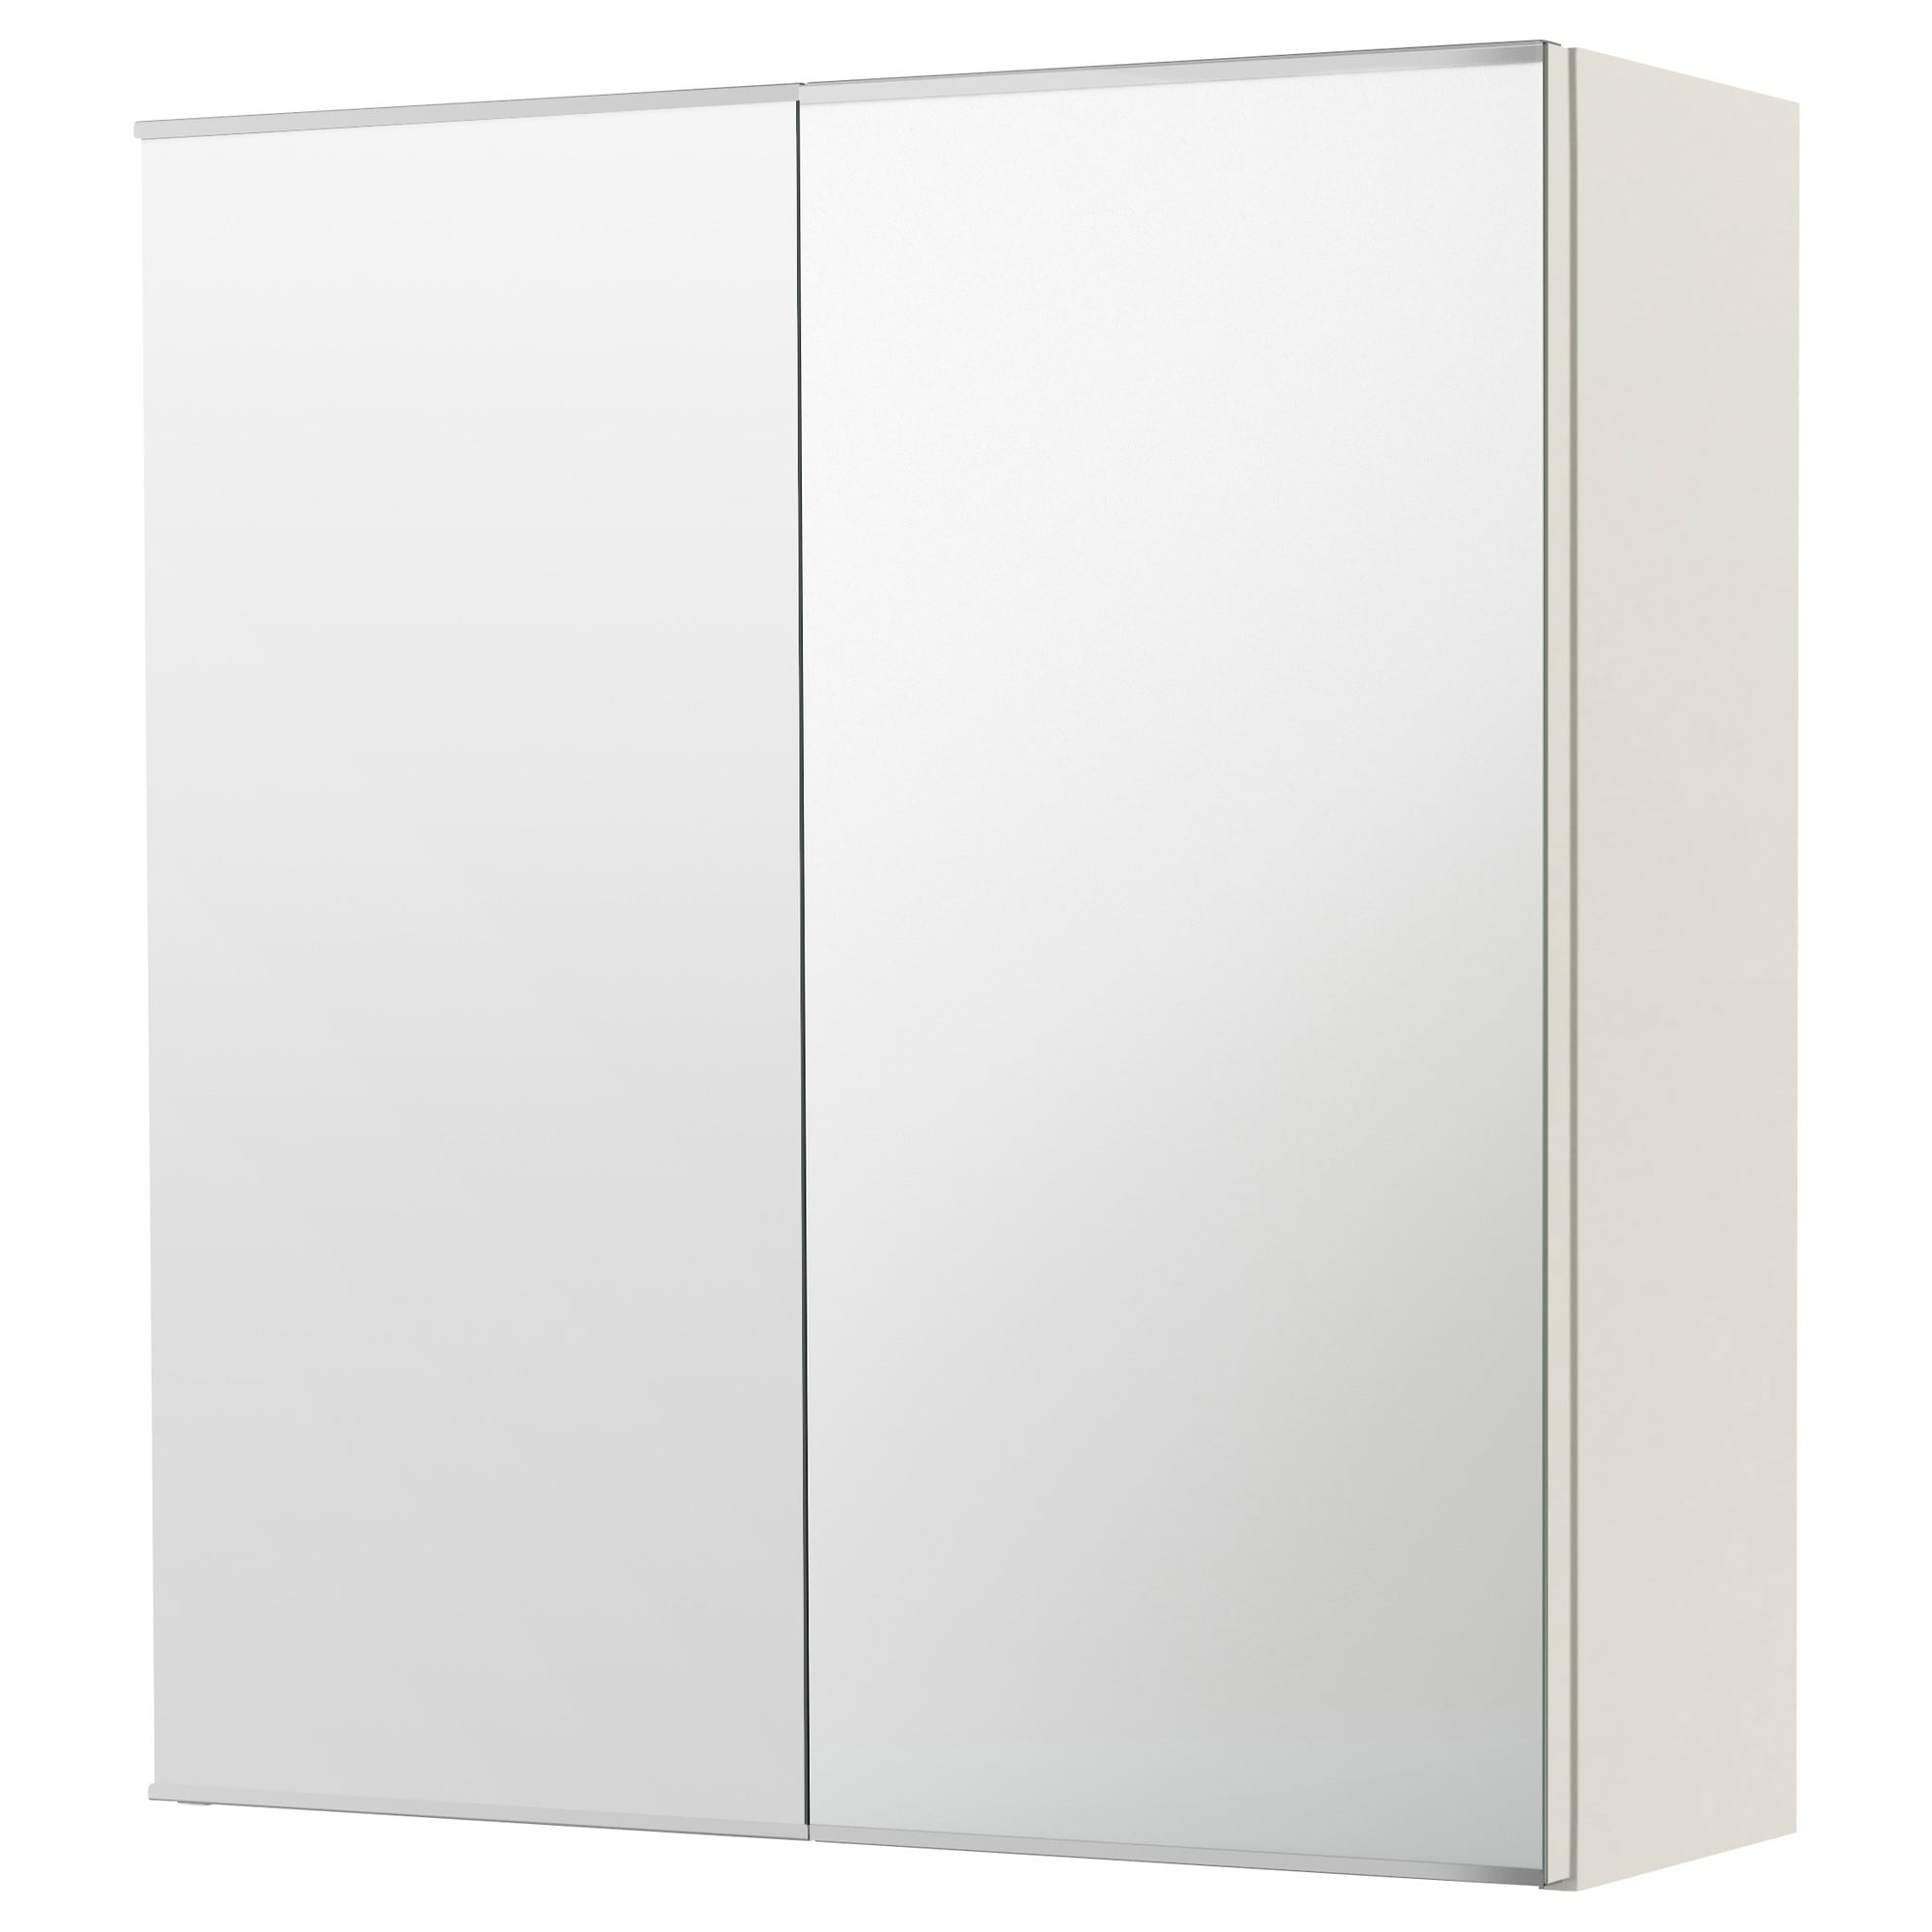 Bathroom mirror cabinet - Lill Ngen Mirror Cabinet With 2 Doors White Width 23 5 8 Depth